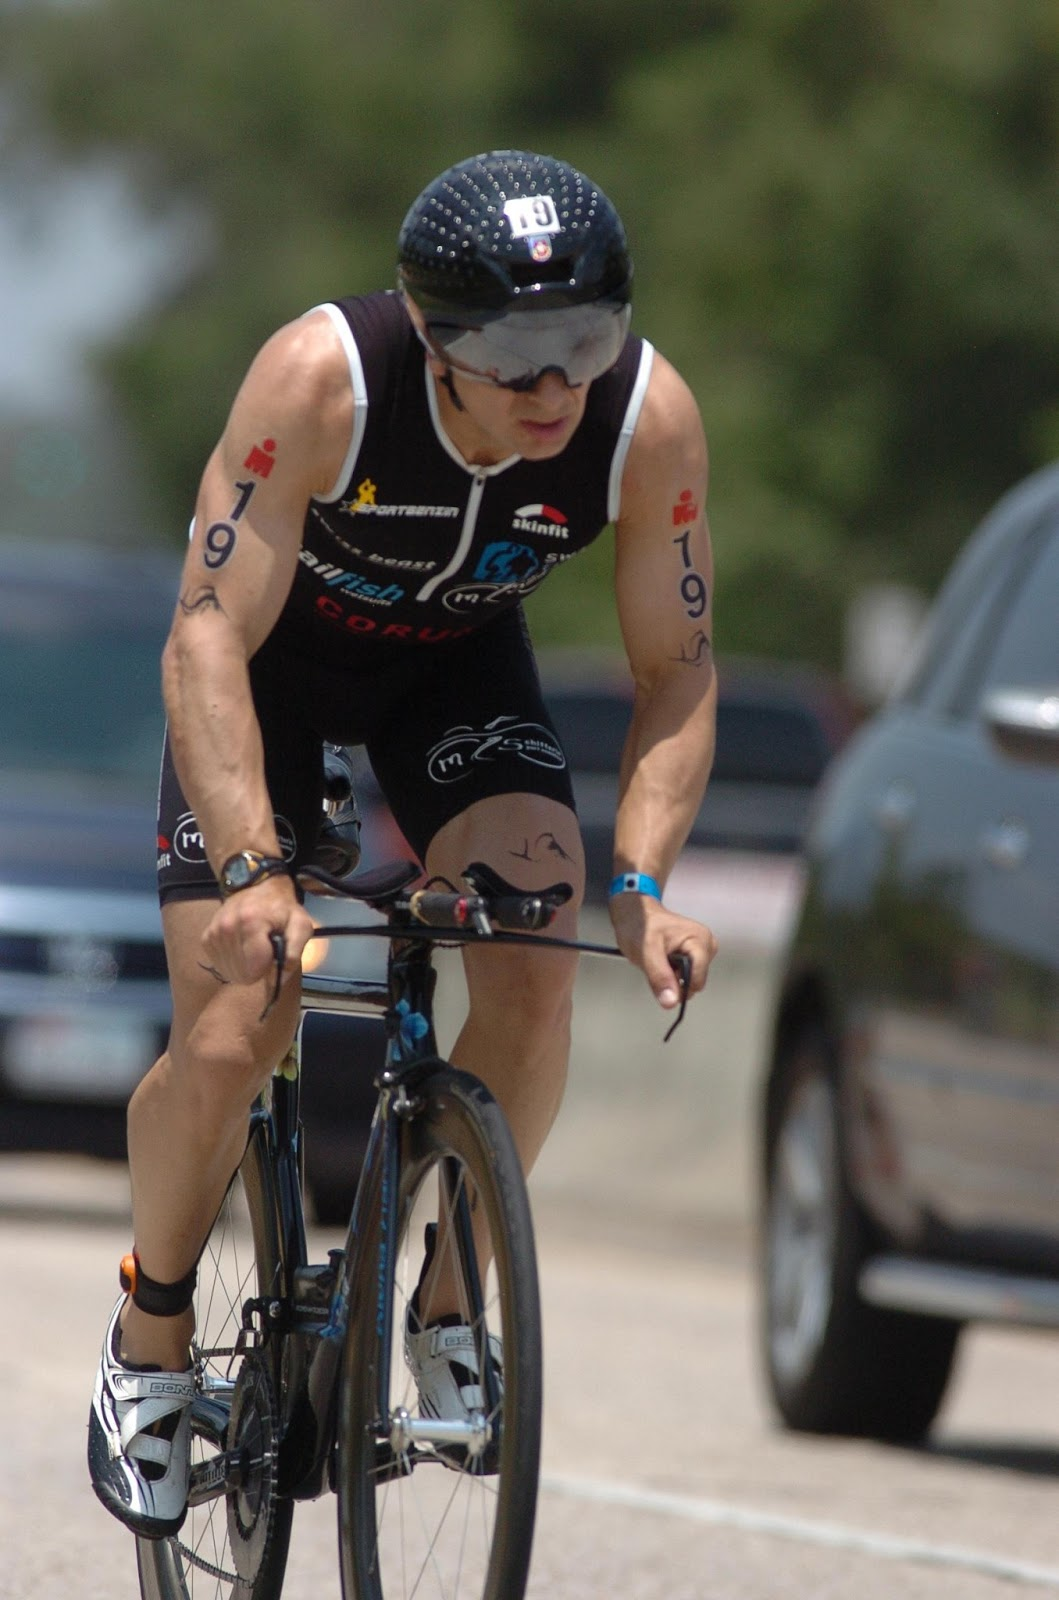 Mike Schifferle, Ironman